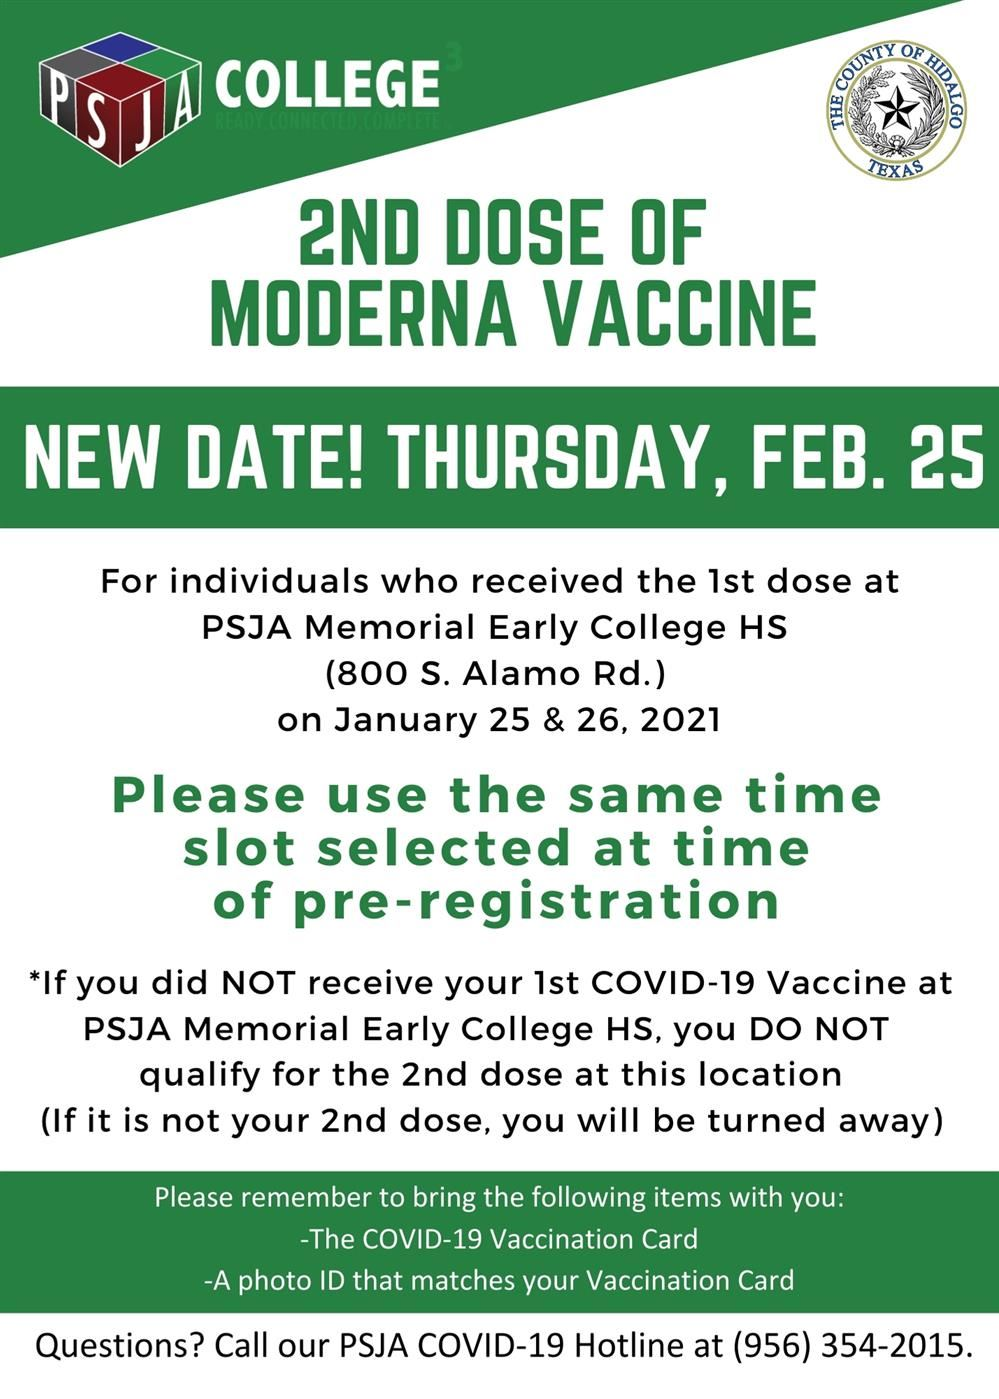 Update *New Date*: 2nd Dose Moderna Vaccine will be available on Thursday, Feb. 25